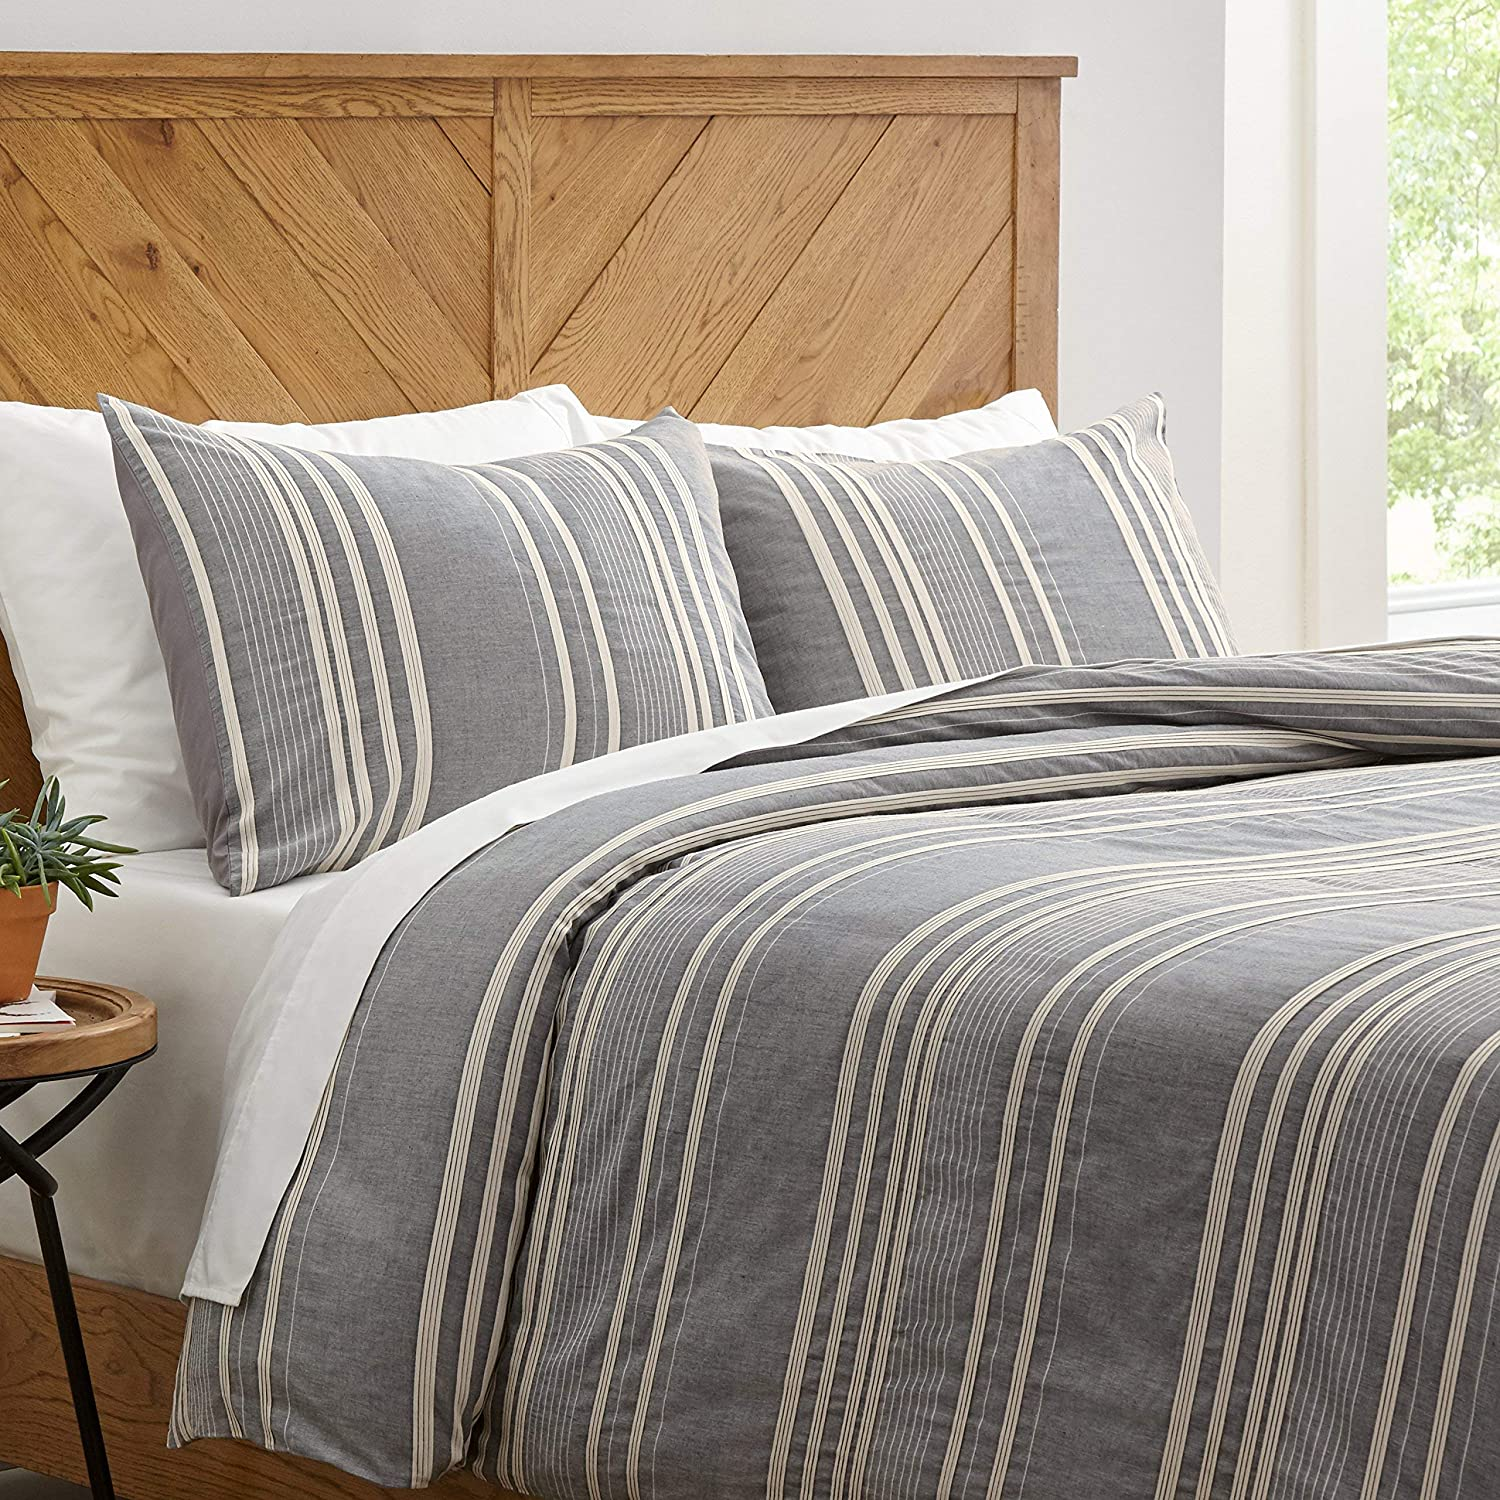 Stone & Beam Casual Pleated Stripe 100% Cotton Duvet Cover Set, Easy Care, Full/Queen, Chambray